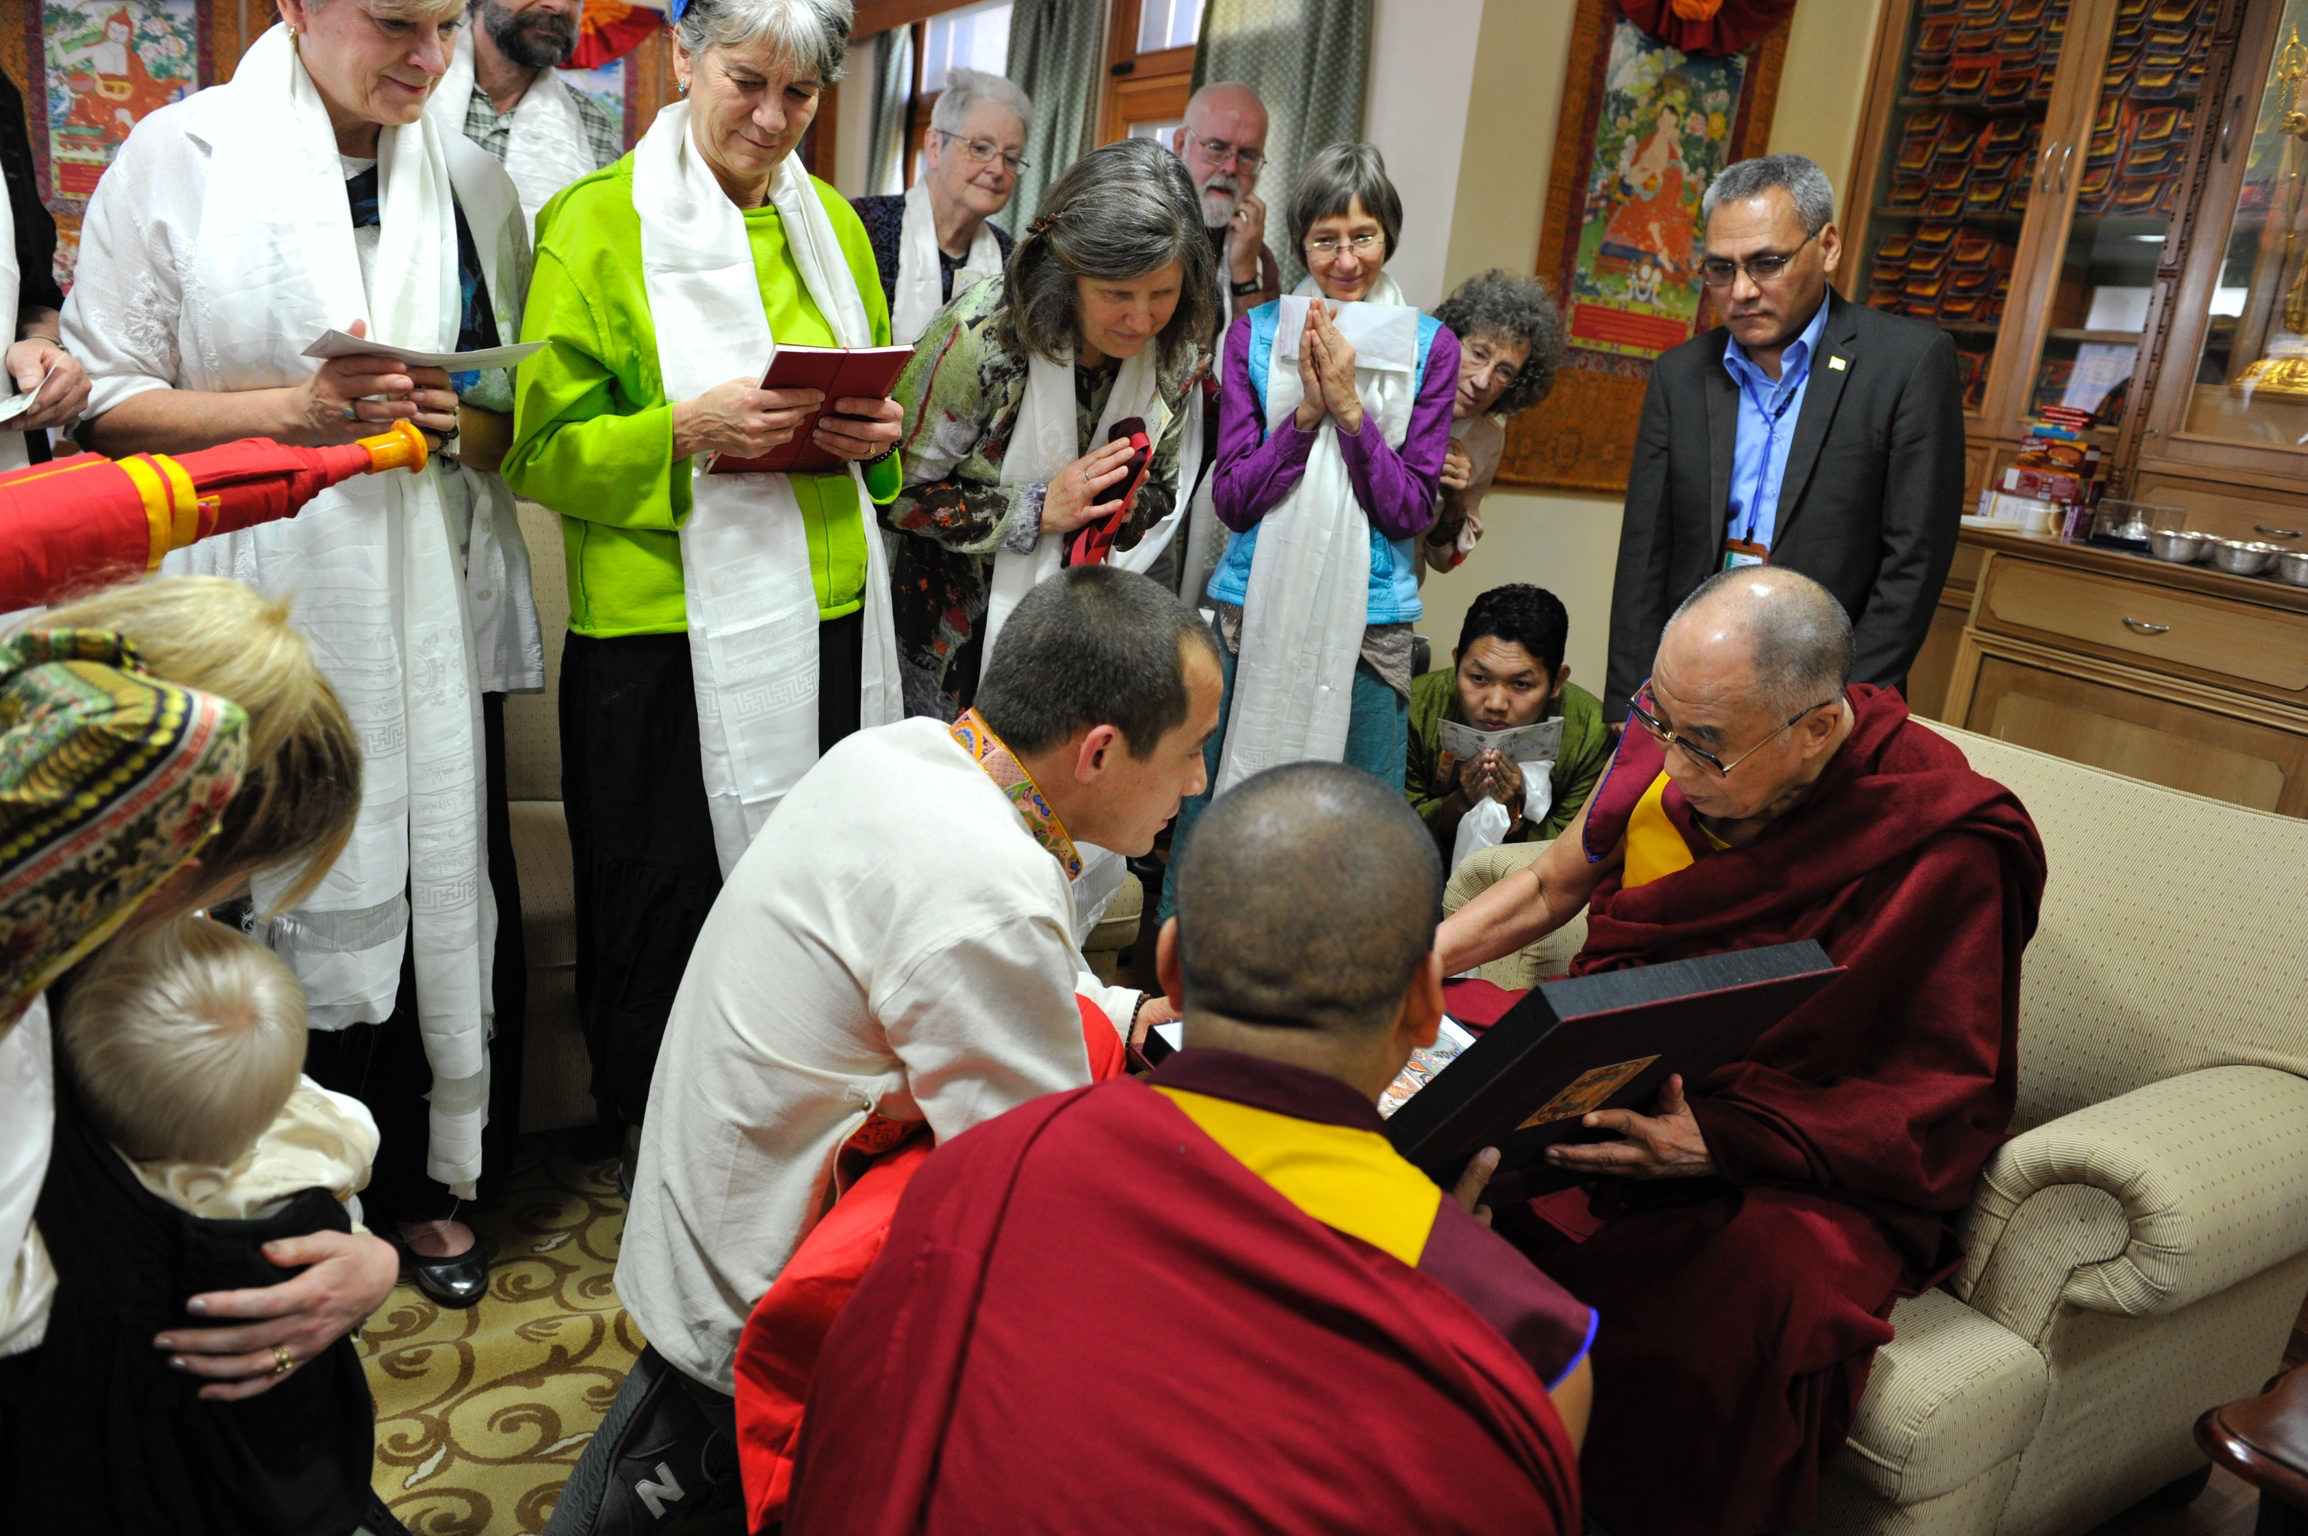 His Holiness the Dalai Lama receiving the first copy of Celestial Portfolio